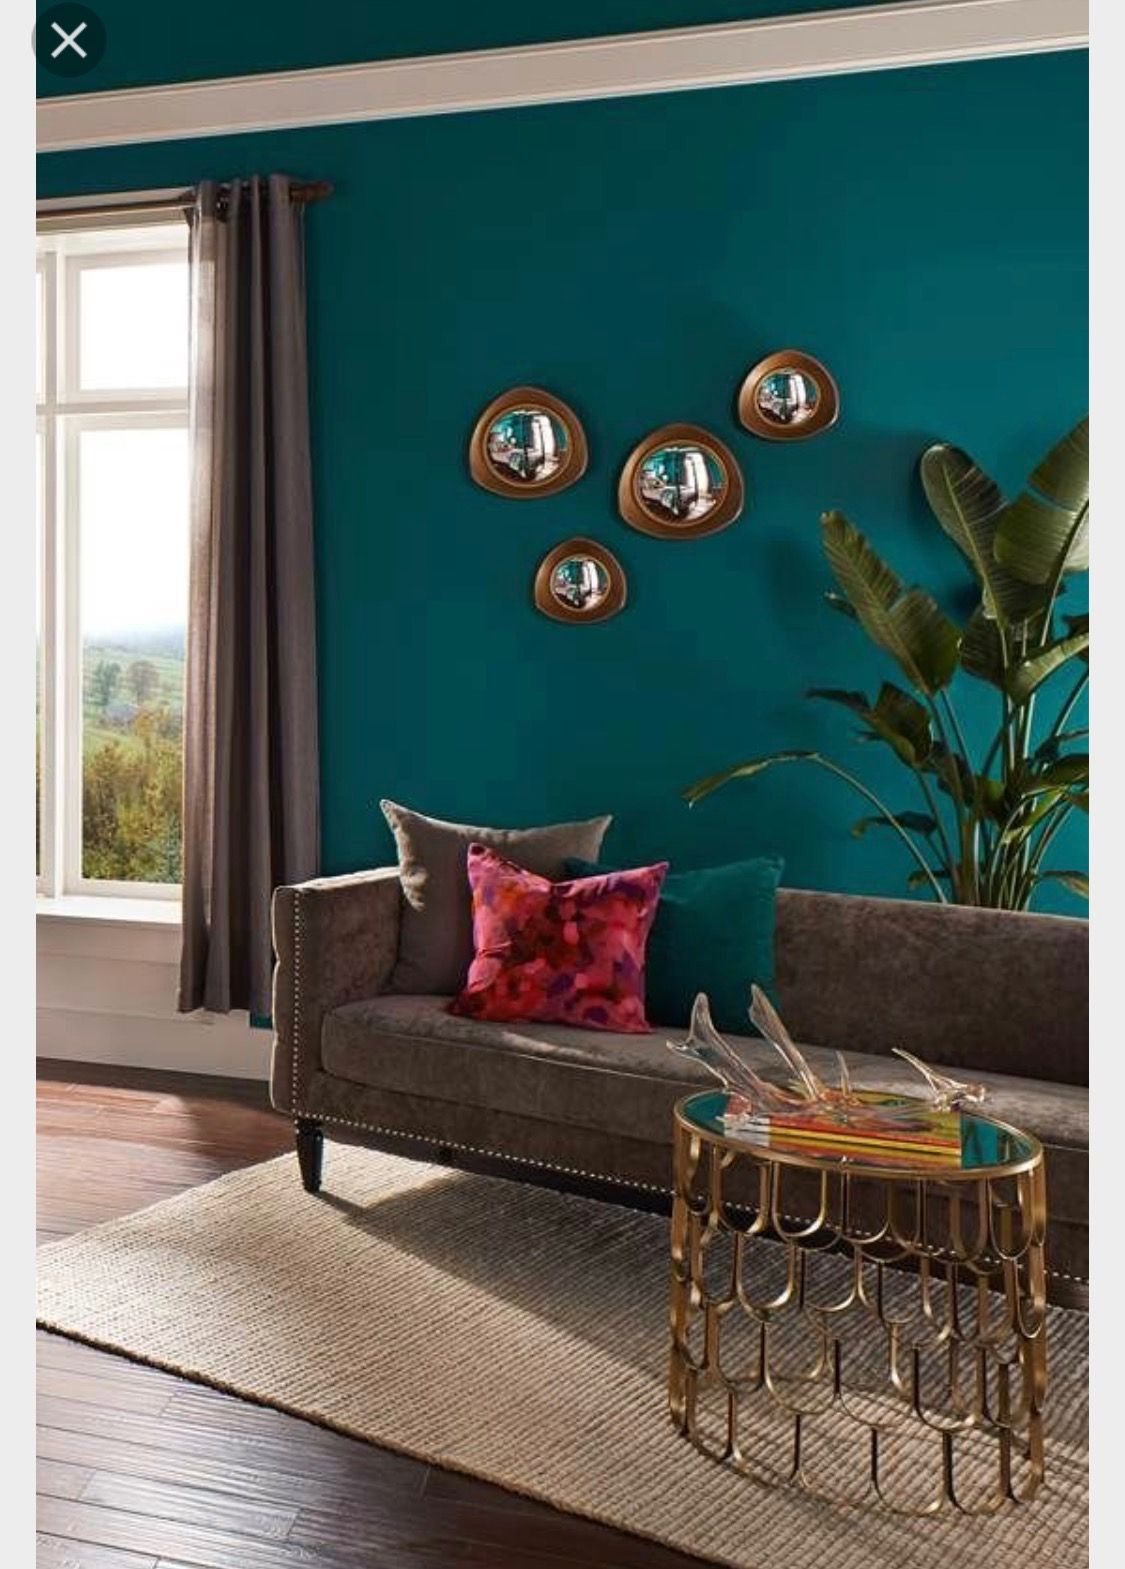 30 Best Teal And Pink Images Interior House Interior Home Decor #teal #and #pink #living #room